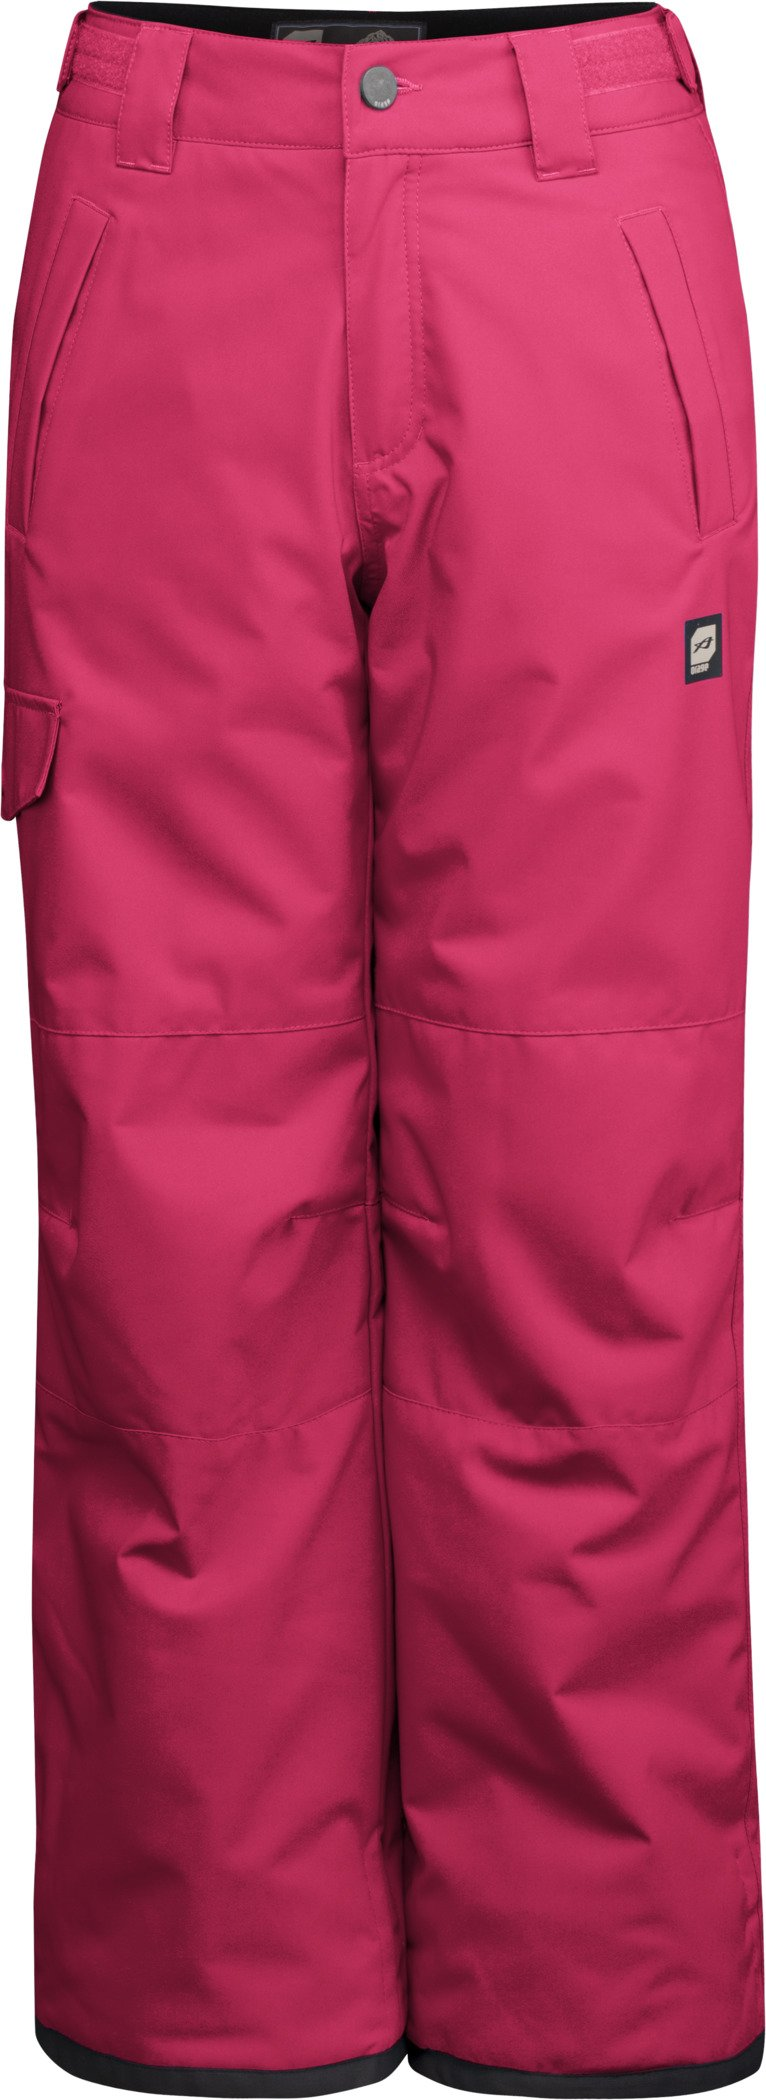 Orage Alex Pants, K283 Rosa, 10/Medium